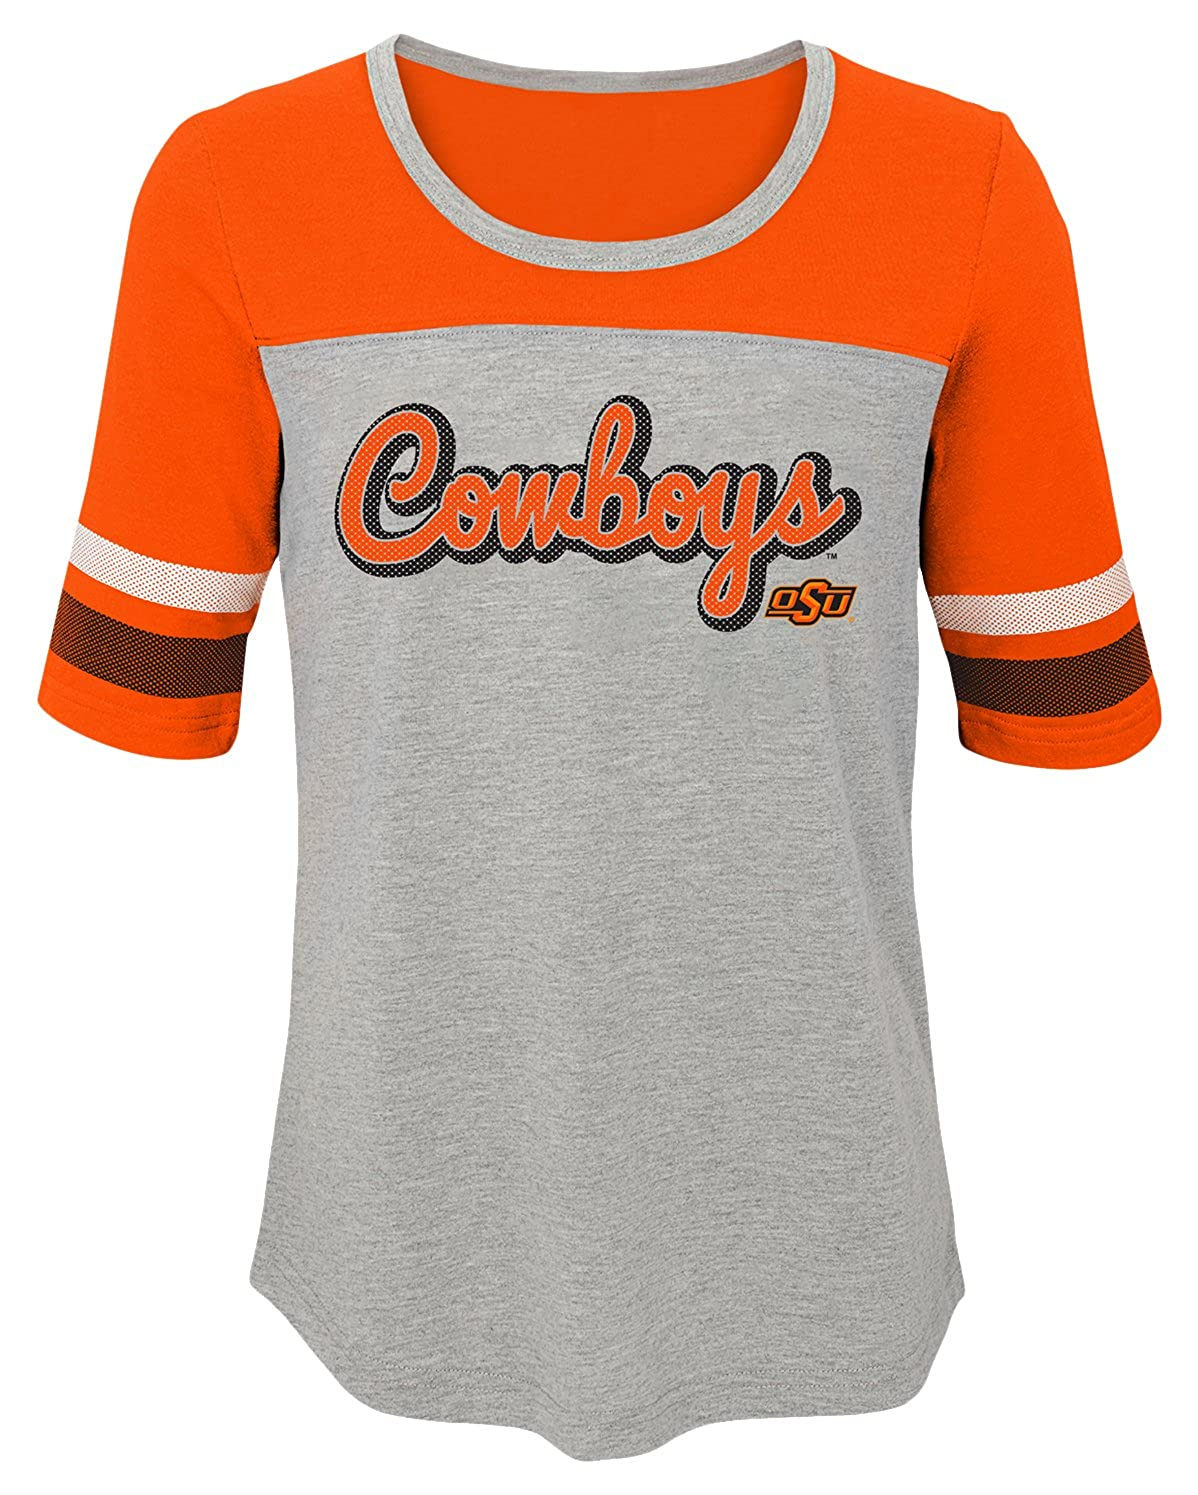 NCAA by Outerstuff NCAA Oklahoma State Cowboys Youth Girls Fan-Tastic Short Sleeve Tee Orange 16 Youth X-Large